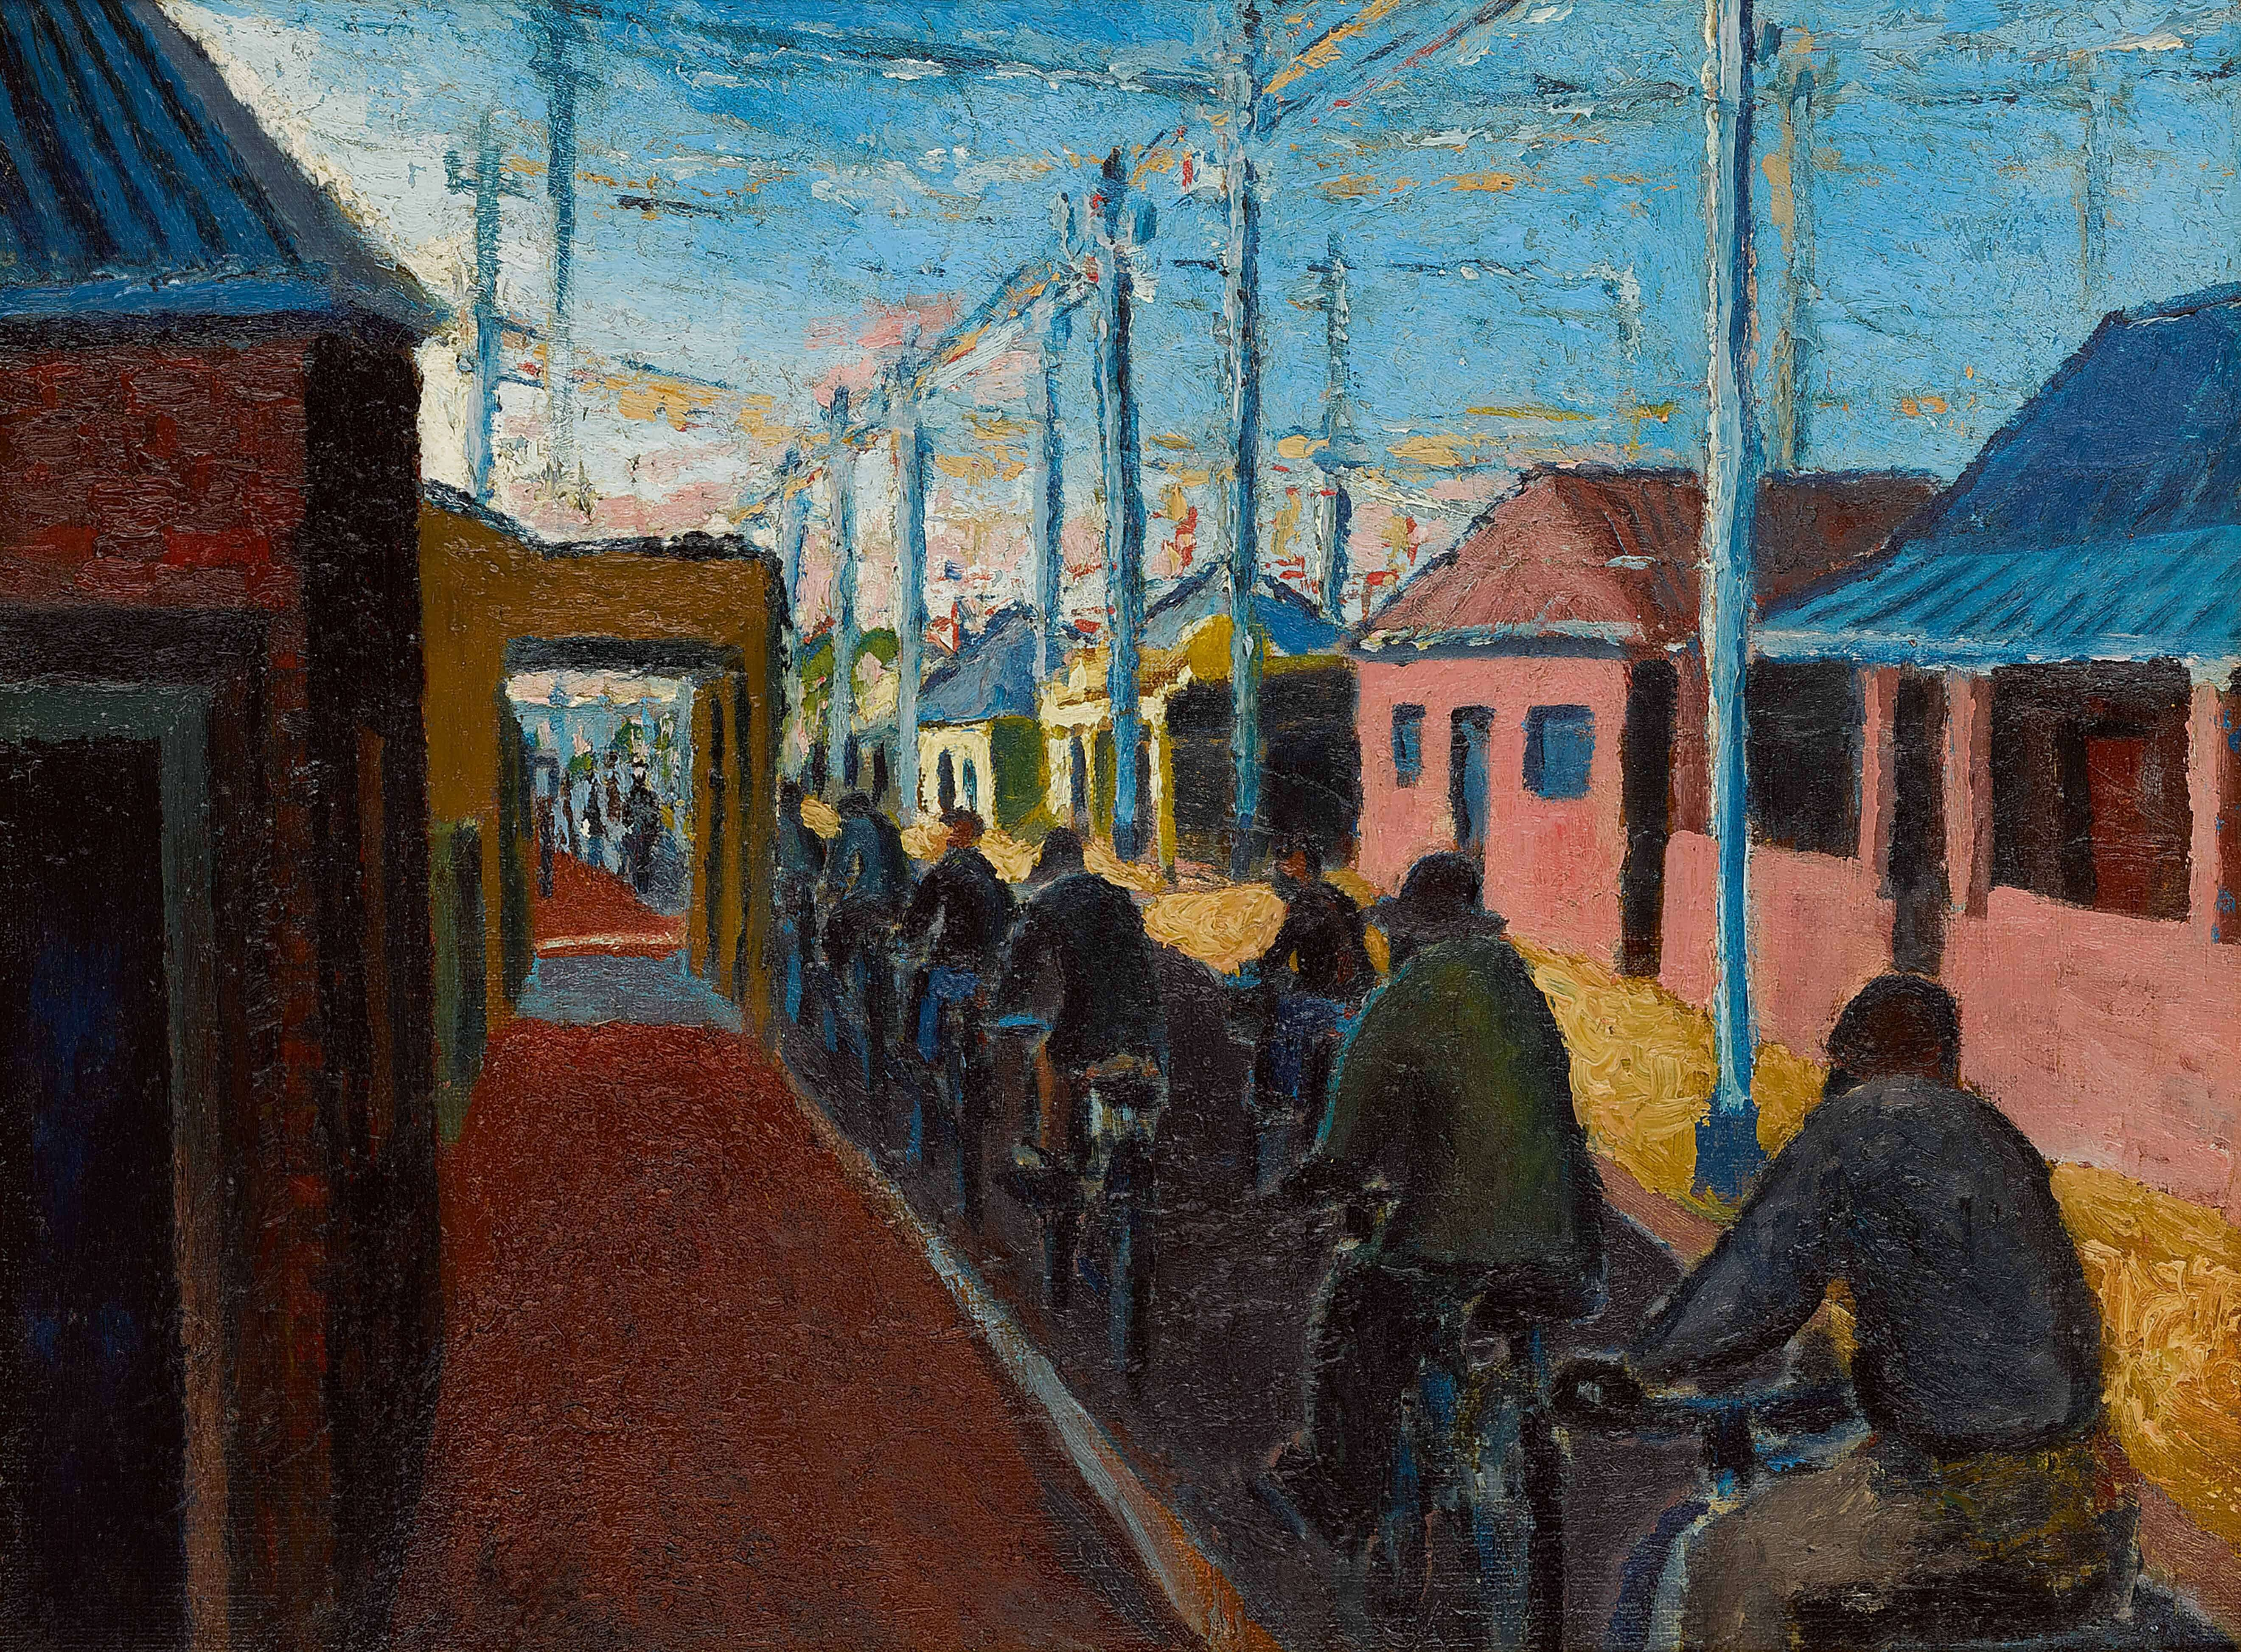 Gerard Sekoto, Cyclists in Sophiatown, 1940.